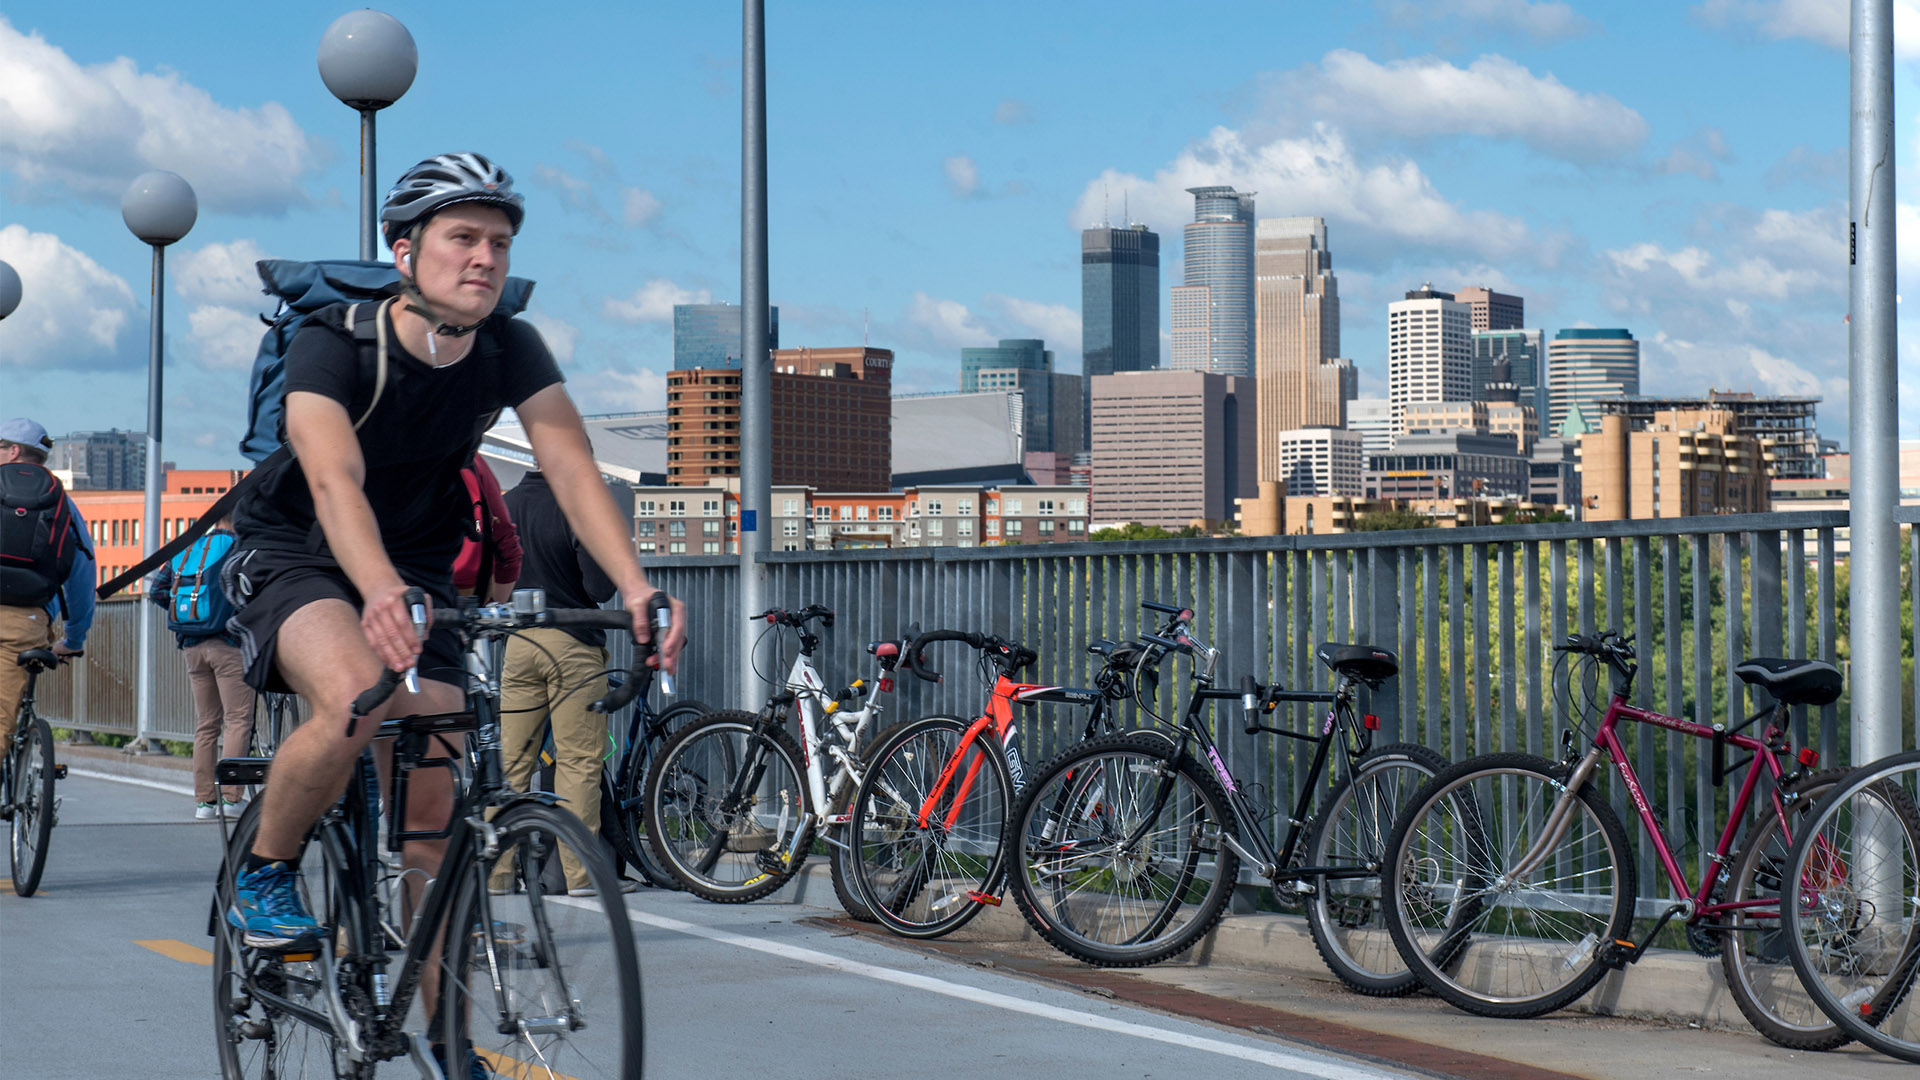 A student in a black shirt and shorts bikes down the Washington Avenue Bridge, with the Minneapolis skyline in the background